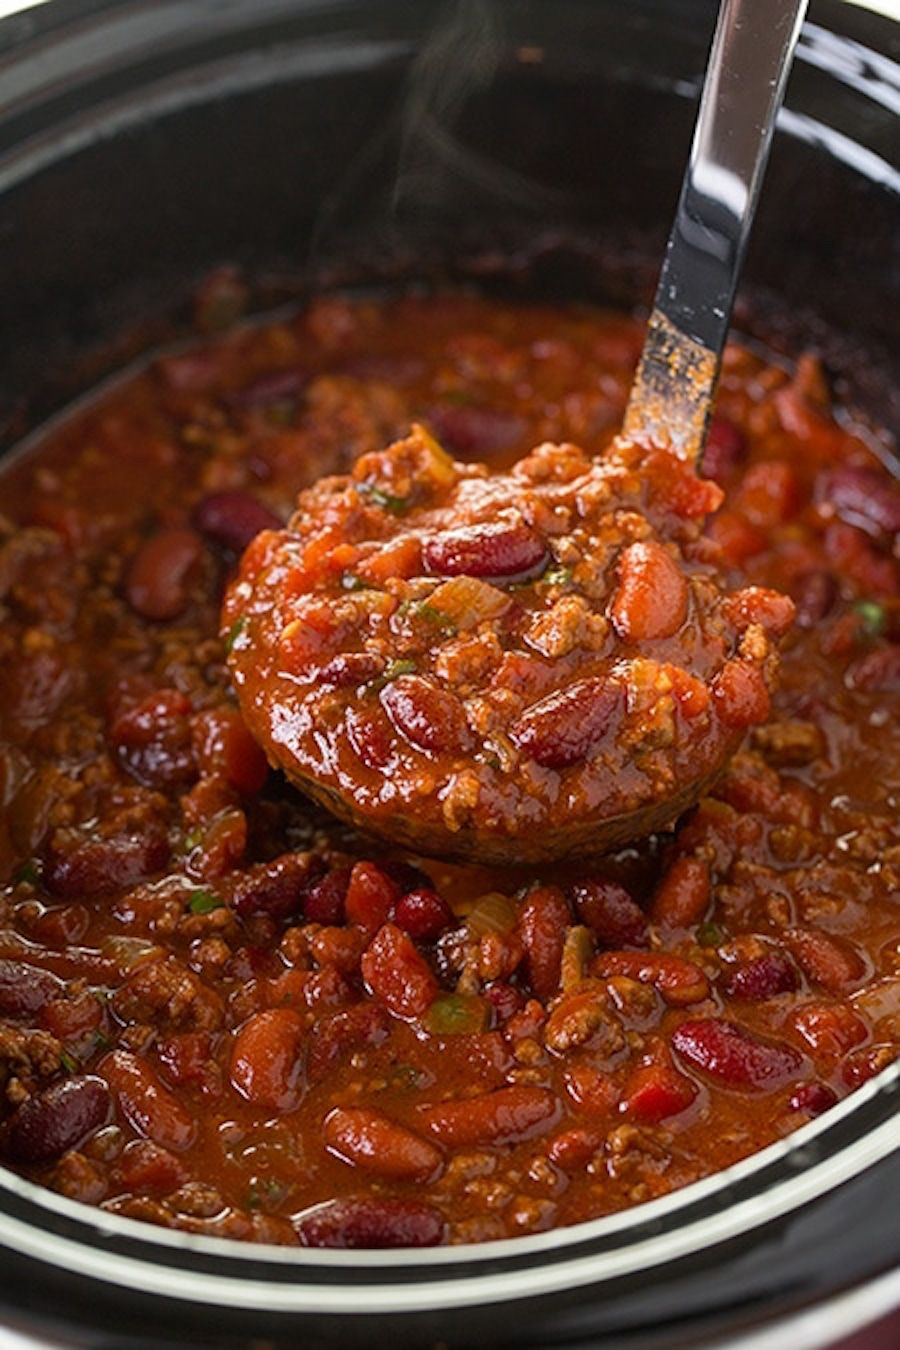 STYLECASTER | 13 Chili Recipes That Make Great Lunch Leftovers | Slow-Cooker Chili